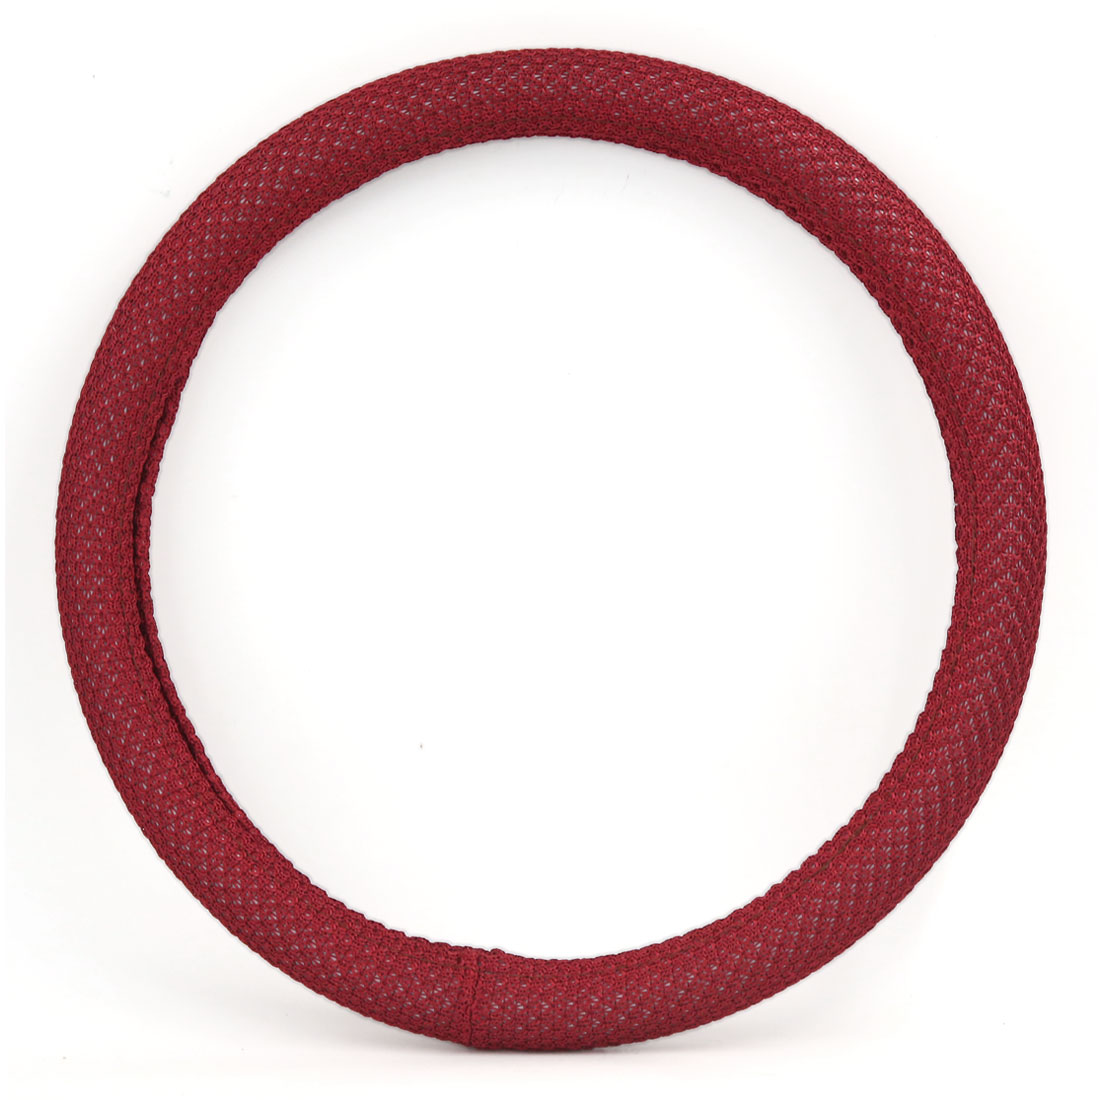 Unique Bargains 35cm Outer 30cm Inner Dia Odorless Antislip Steering Wheel Cover Red for Car